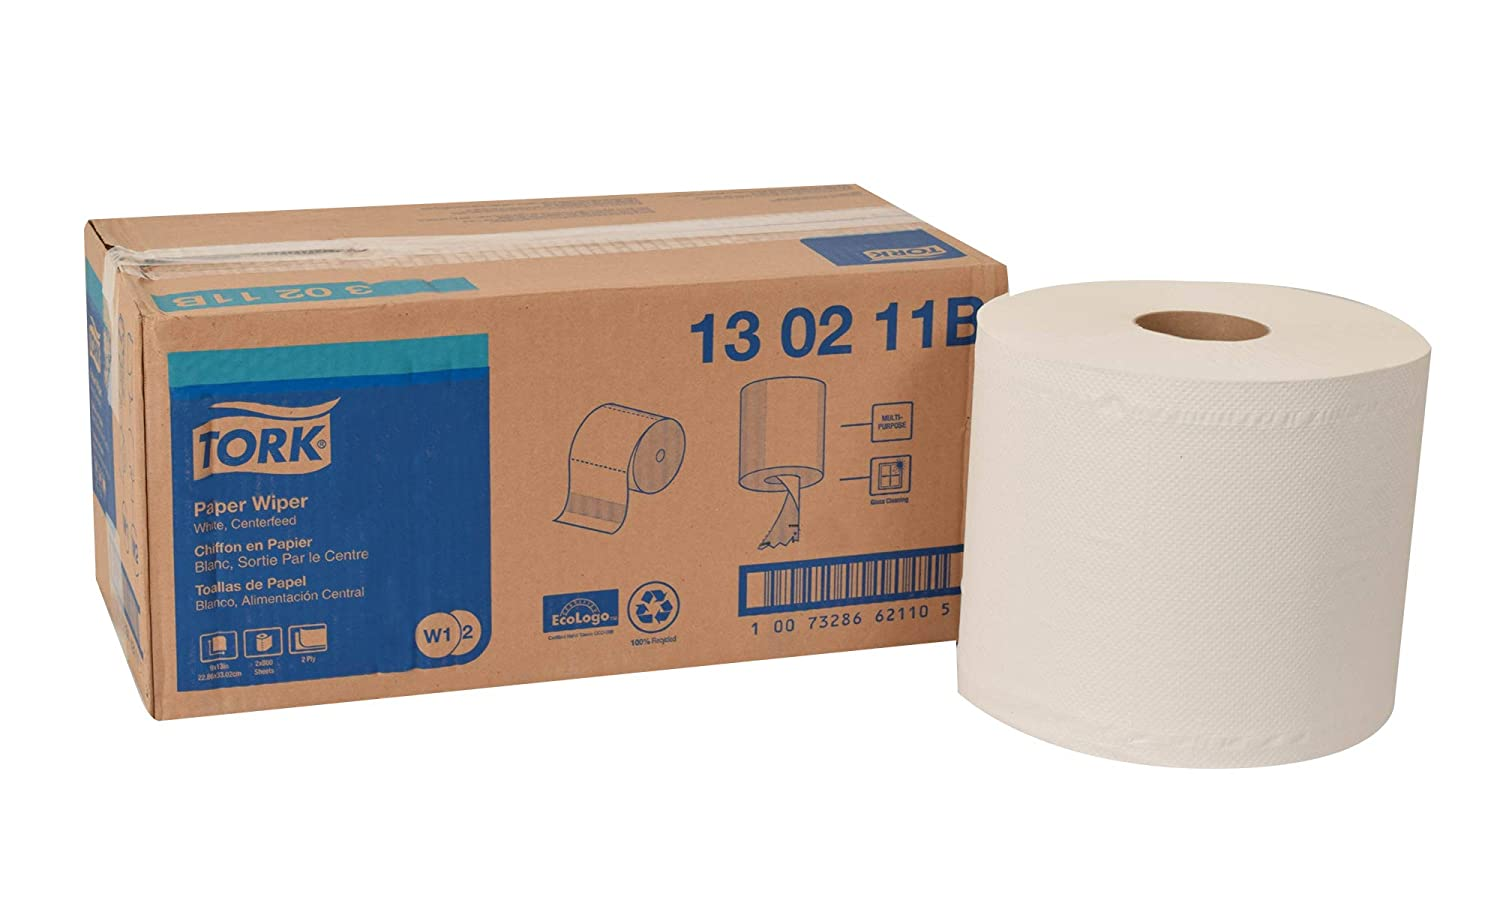 Amazon.com: Tork 130211B Paper Wiper, Centerfeed, 2-Ply, 9.00